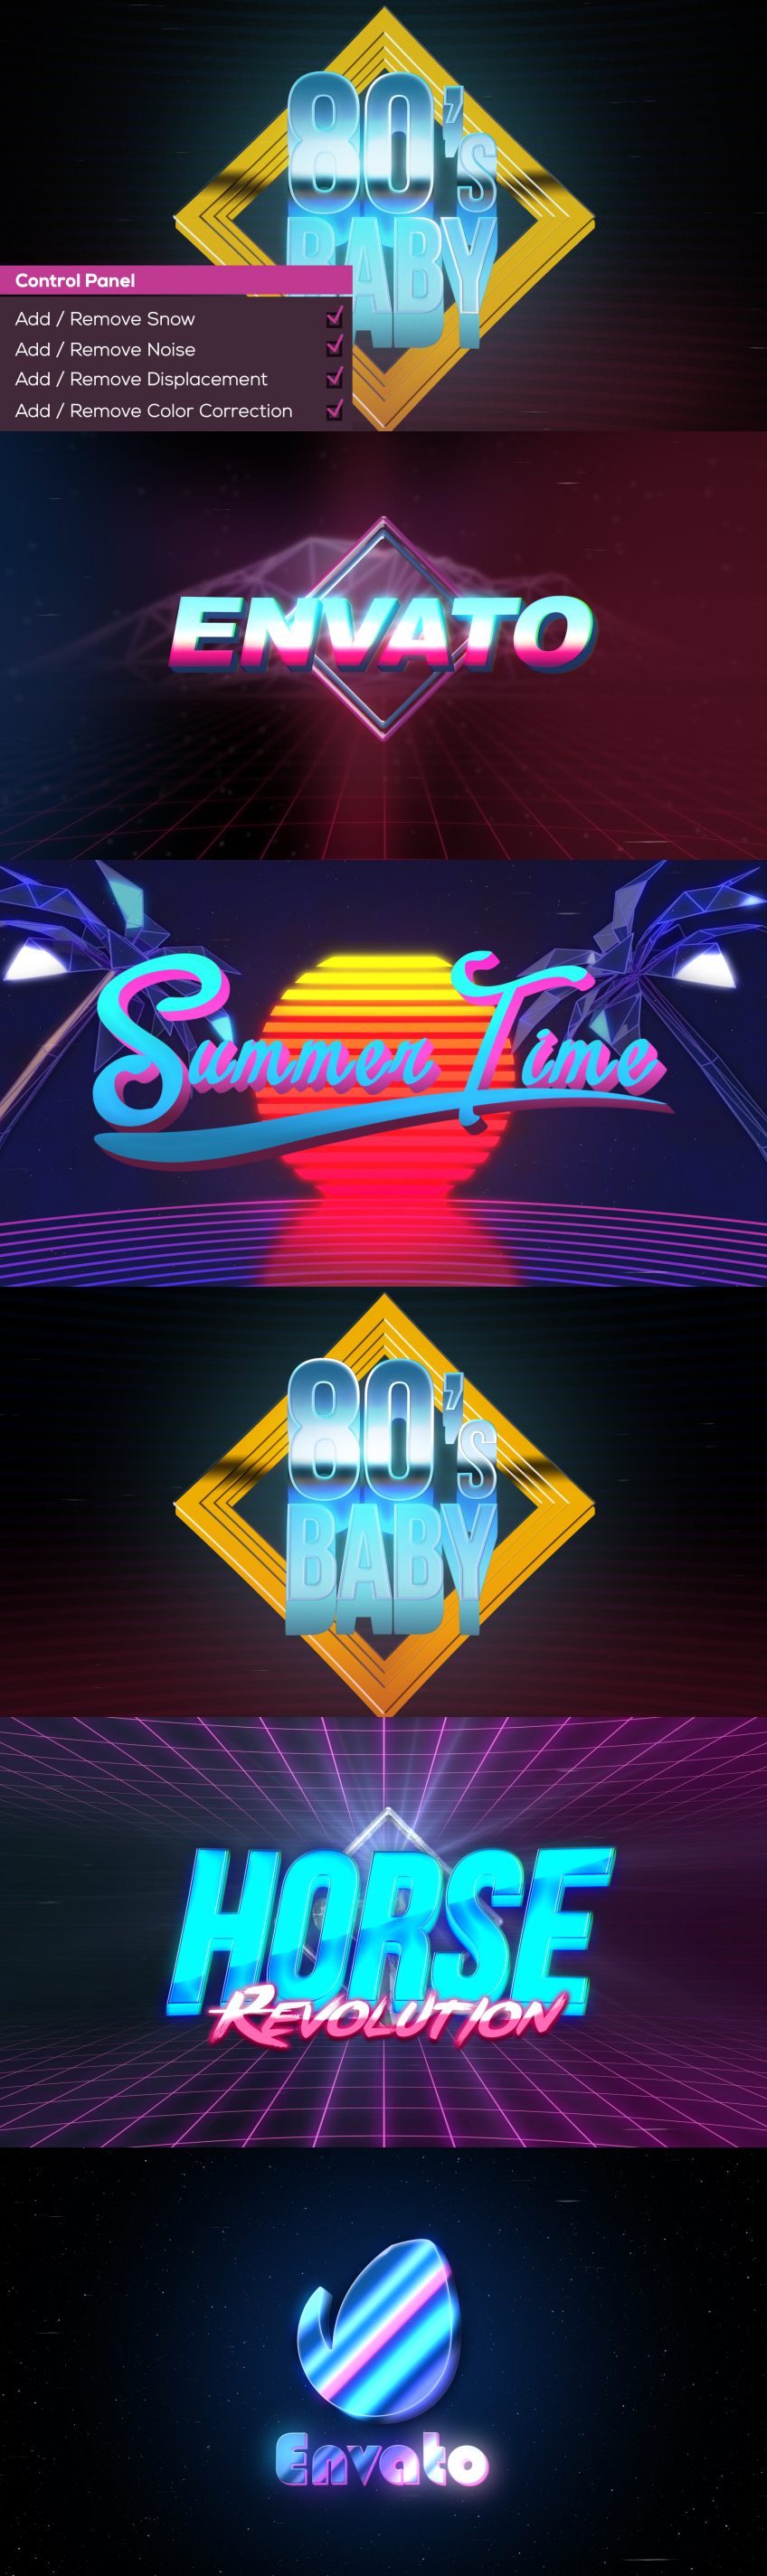 Videohive - 80's Baby | VHS Logo-Titles Opener 18657101 - Free Download